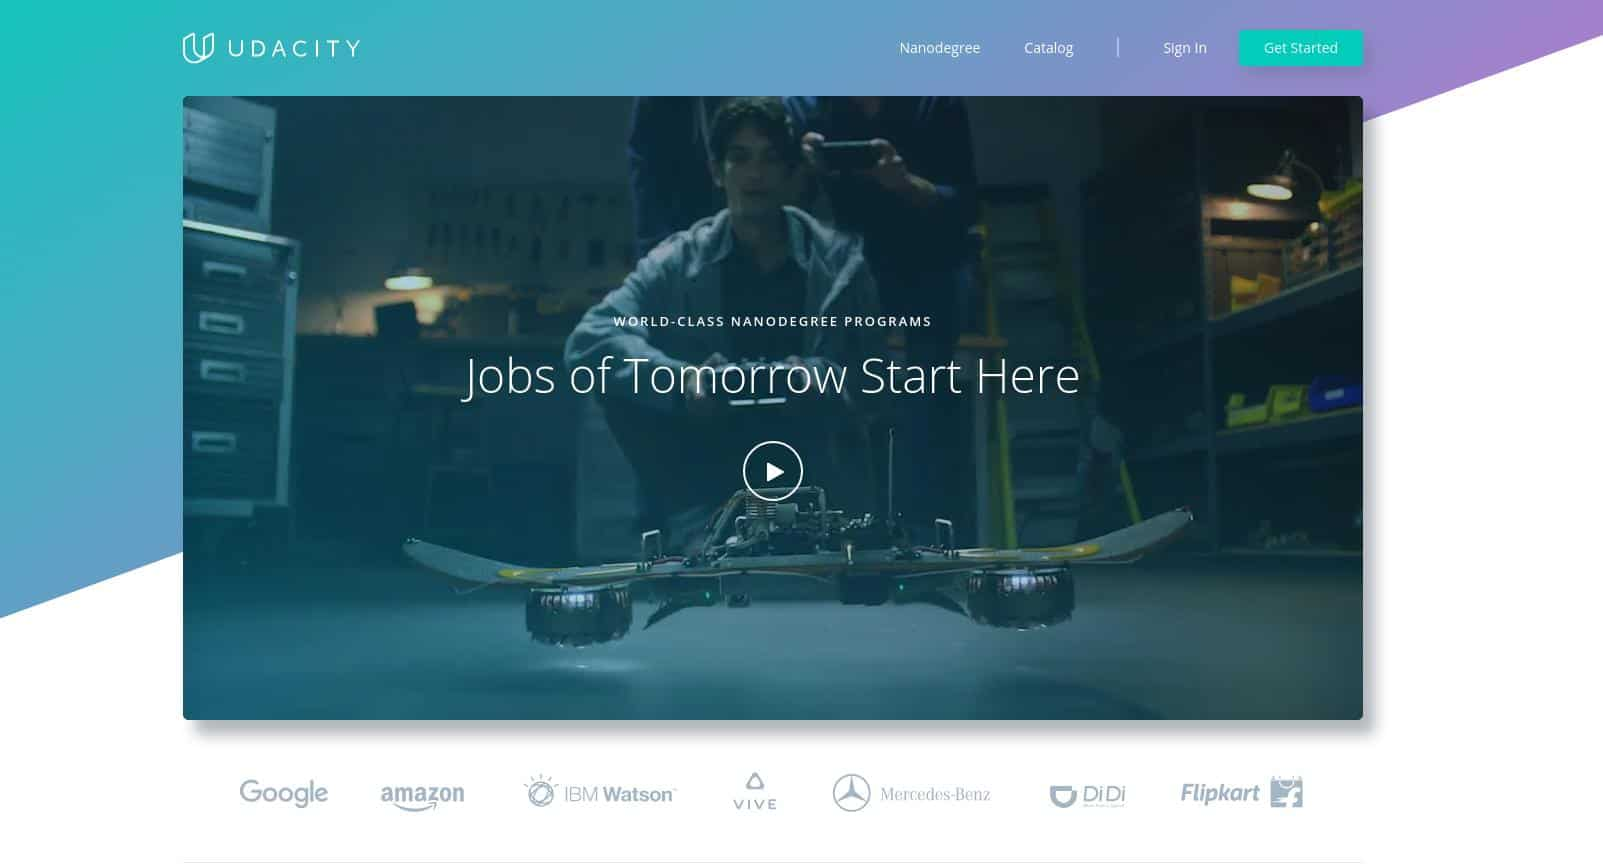 Udacity Starts Airing TV Commercial, Launches a Brand New Homepage